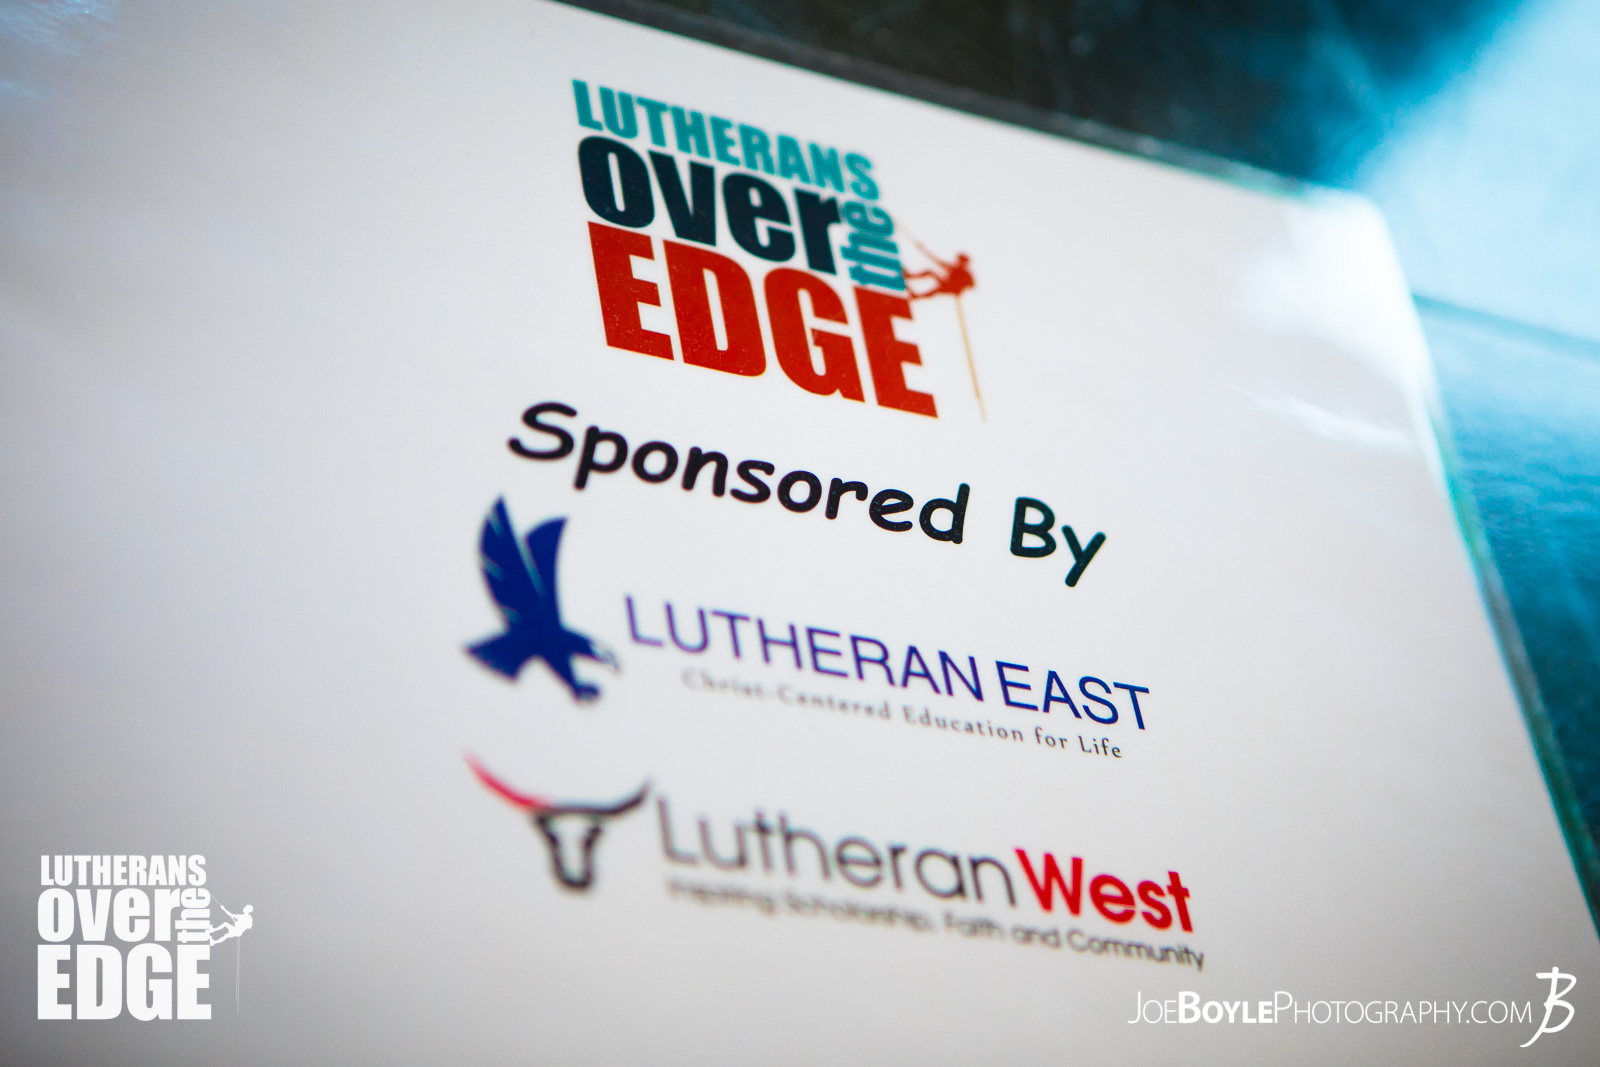 Lutherans-over-the-edge-fundraising-event-double-tree-hotel-rapel-rappel-rappelling